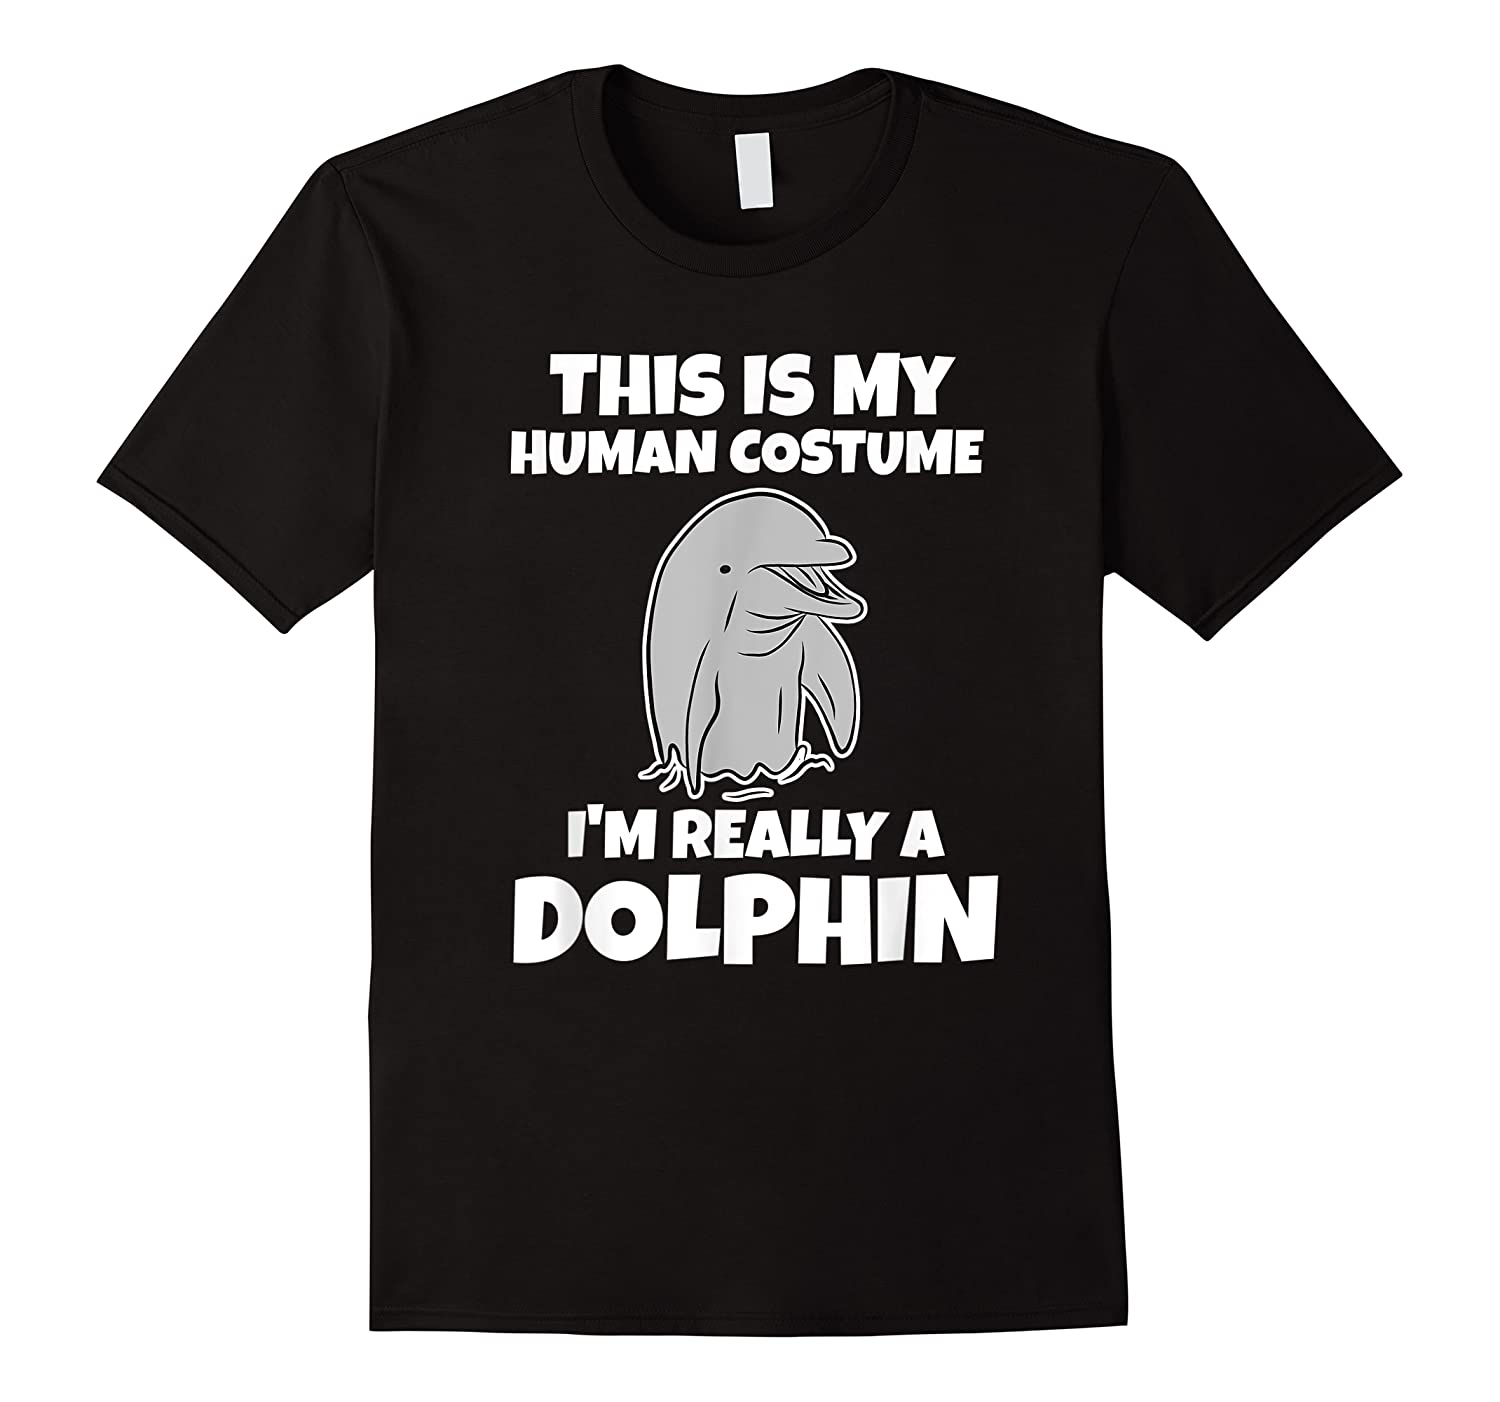 This Is My Human Costume I'm Really A Dolphin Funny Shirts